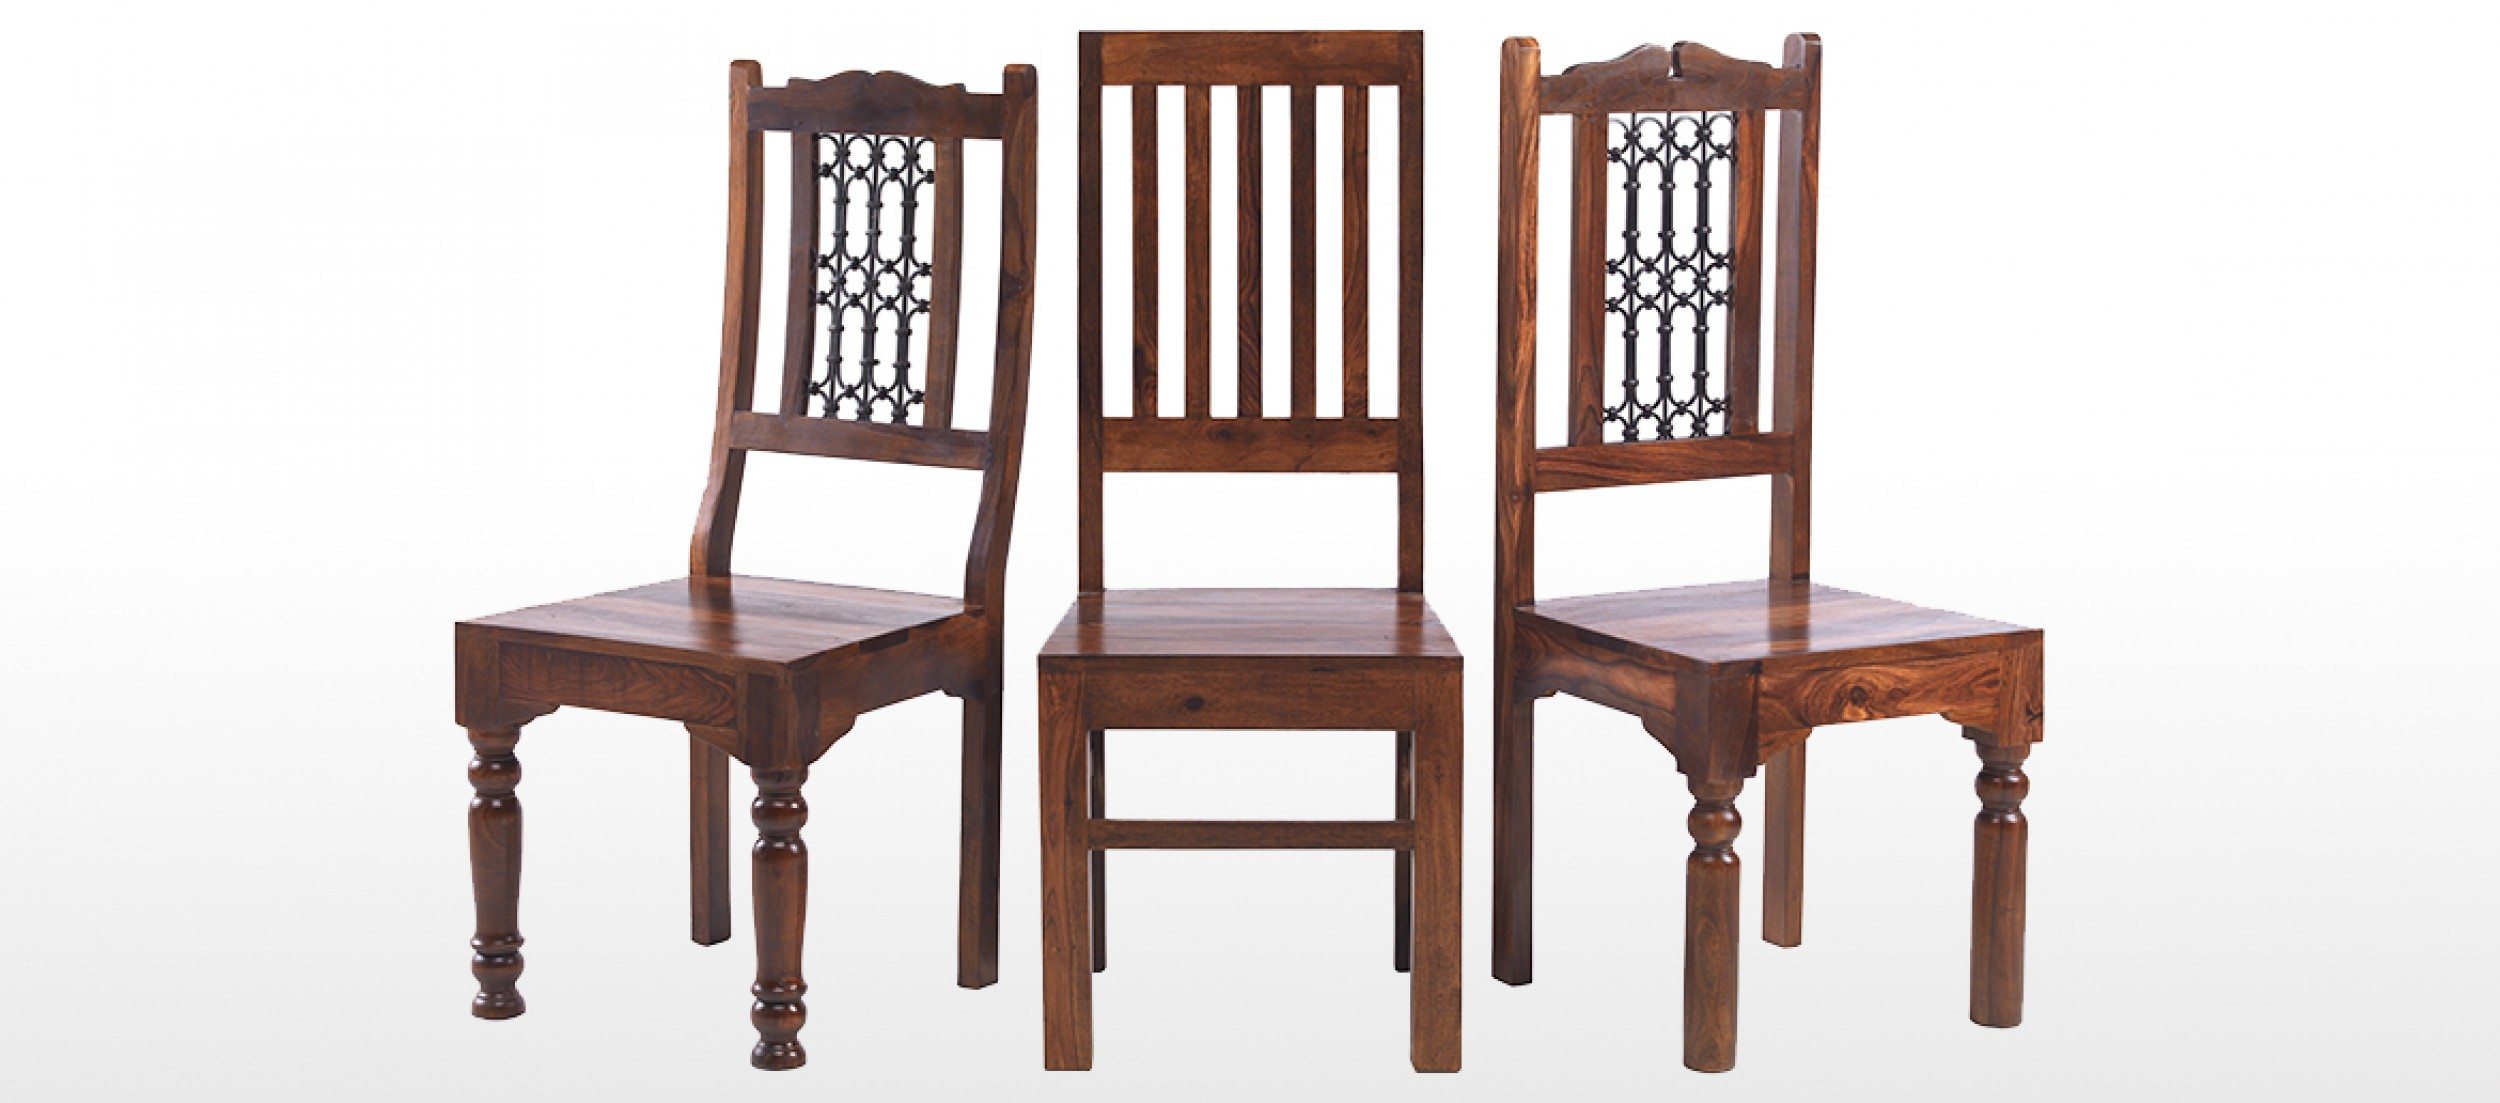 6 chair dining table revolving vadodara cube sheesham 160 cm and chairs quercus